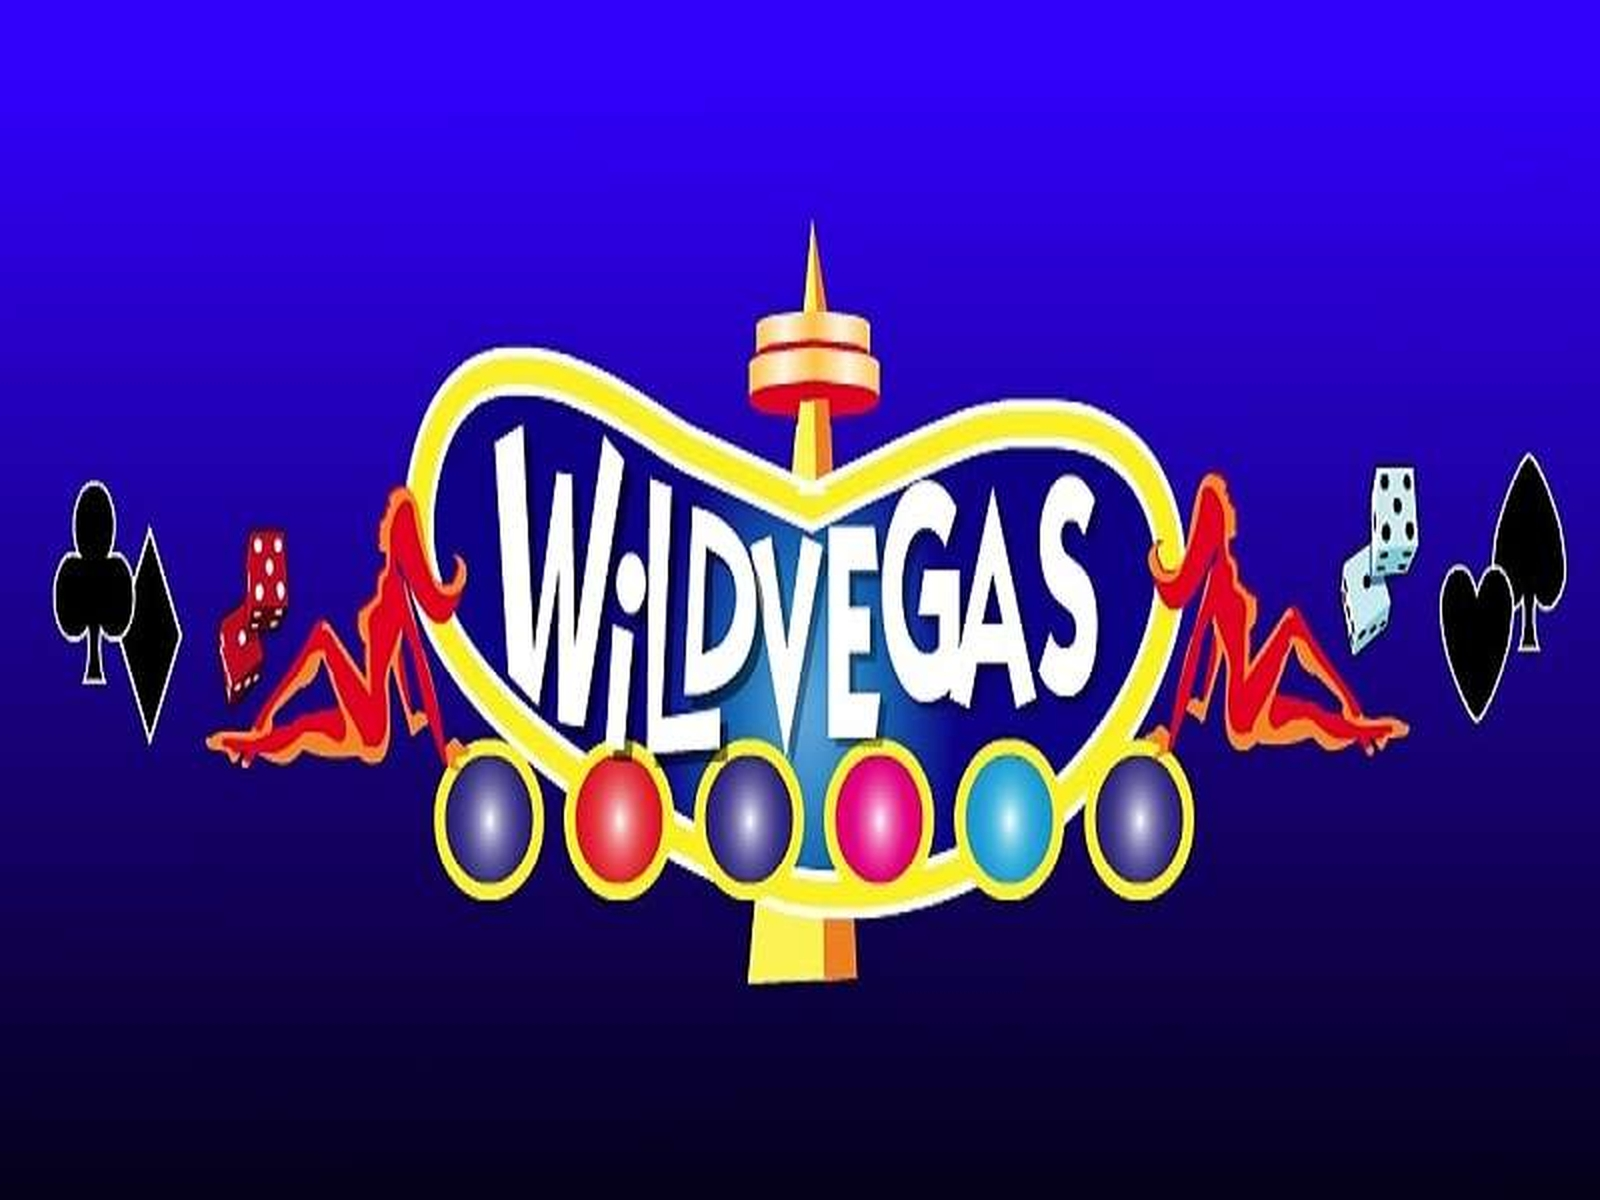 The Wild Vegas (Cozy) Online Slot Demo Game by Cozy